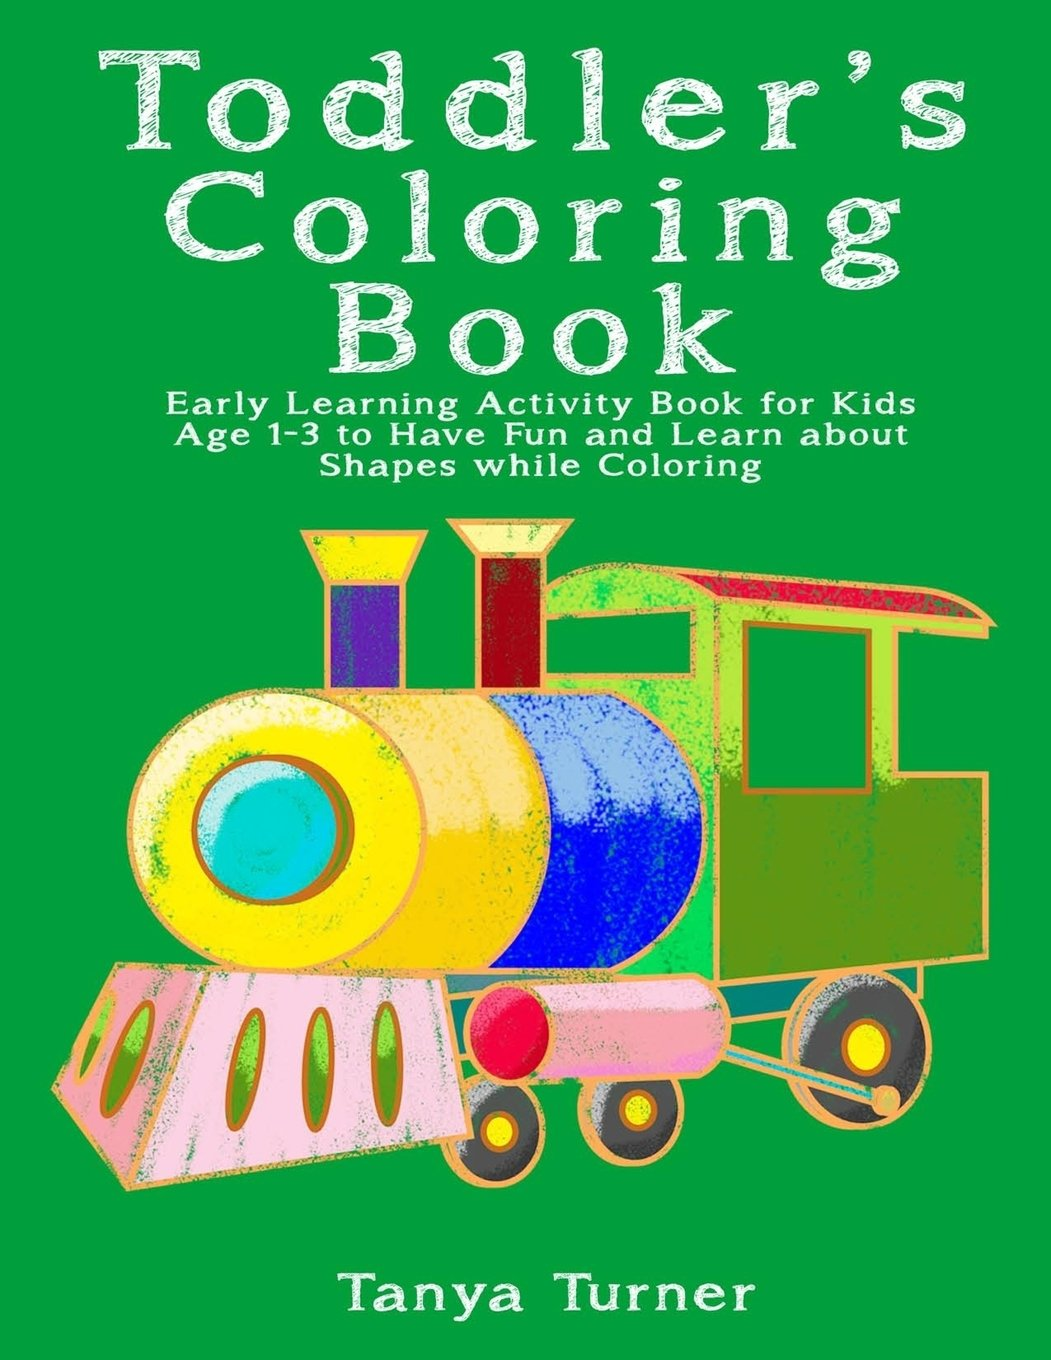 Toddler Coloring Book: Early Learning Activity Book for Kids Age 1-3 ...